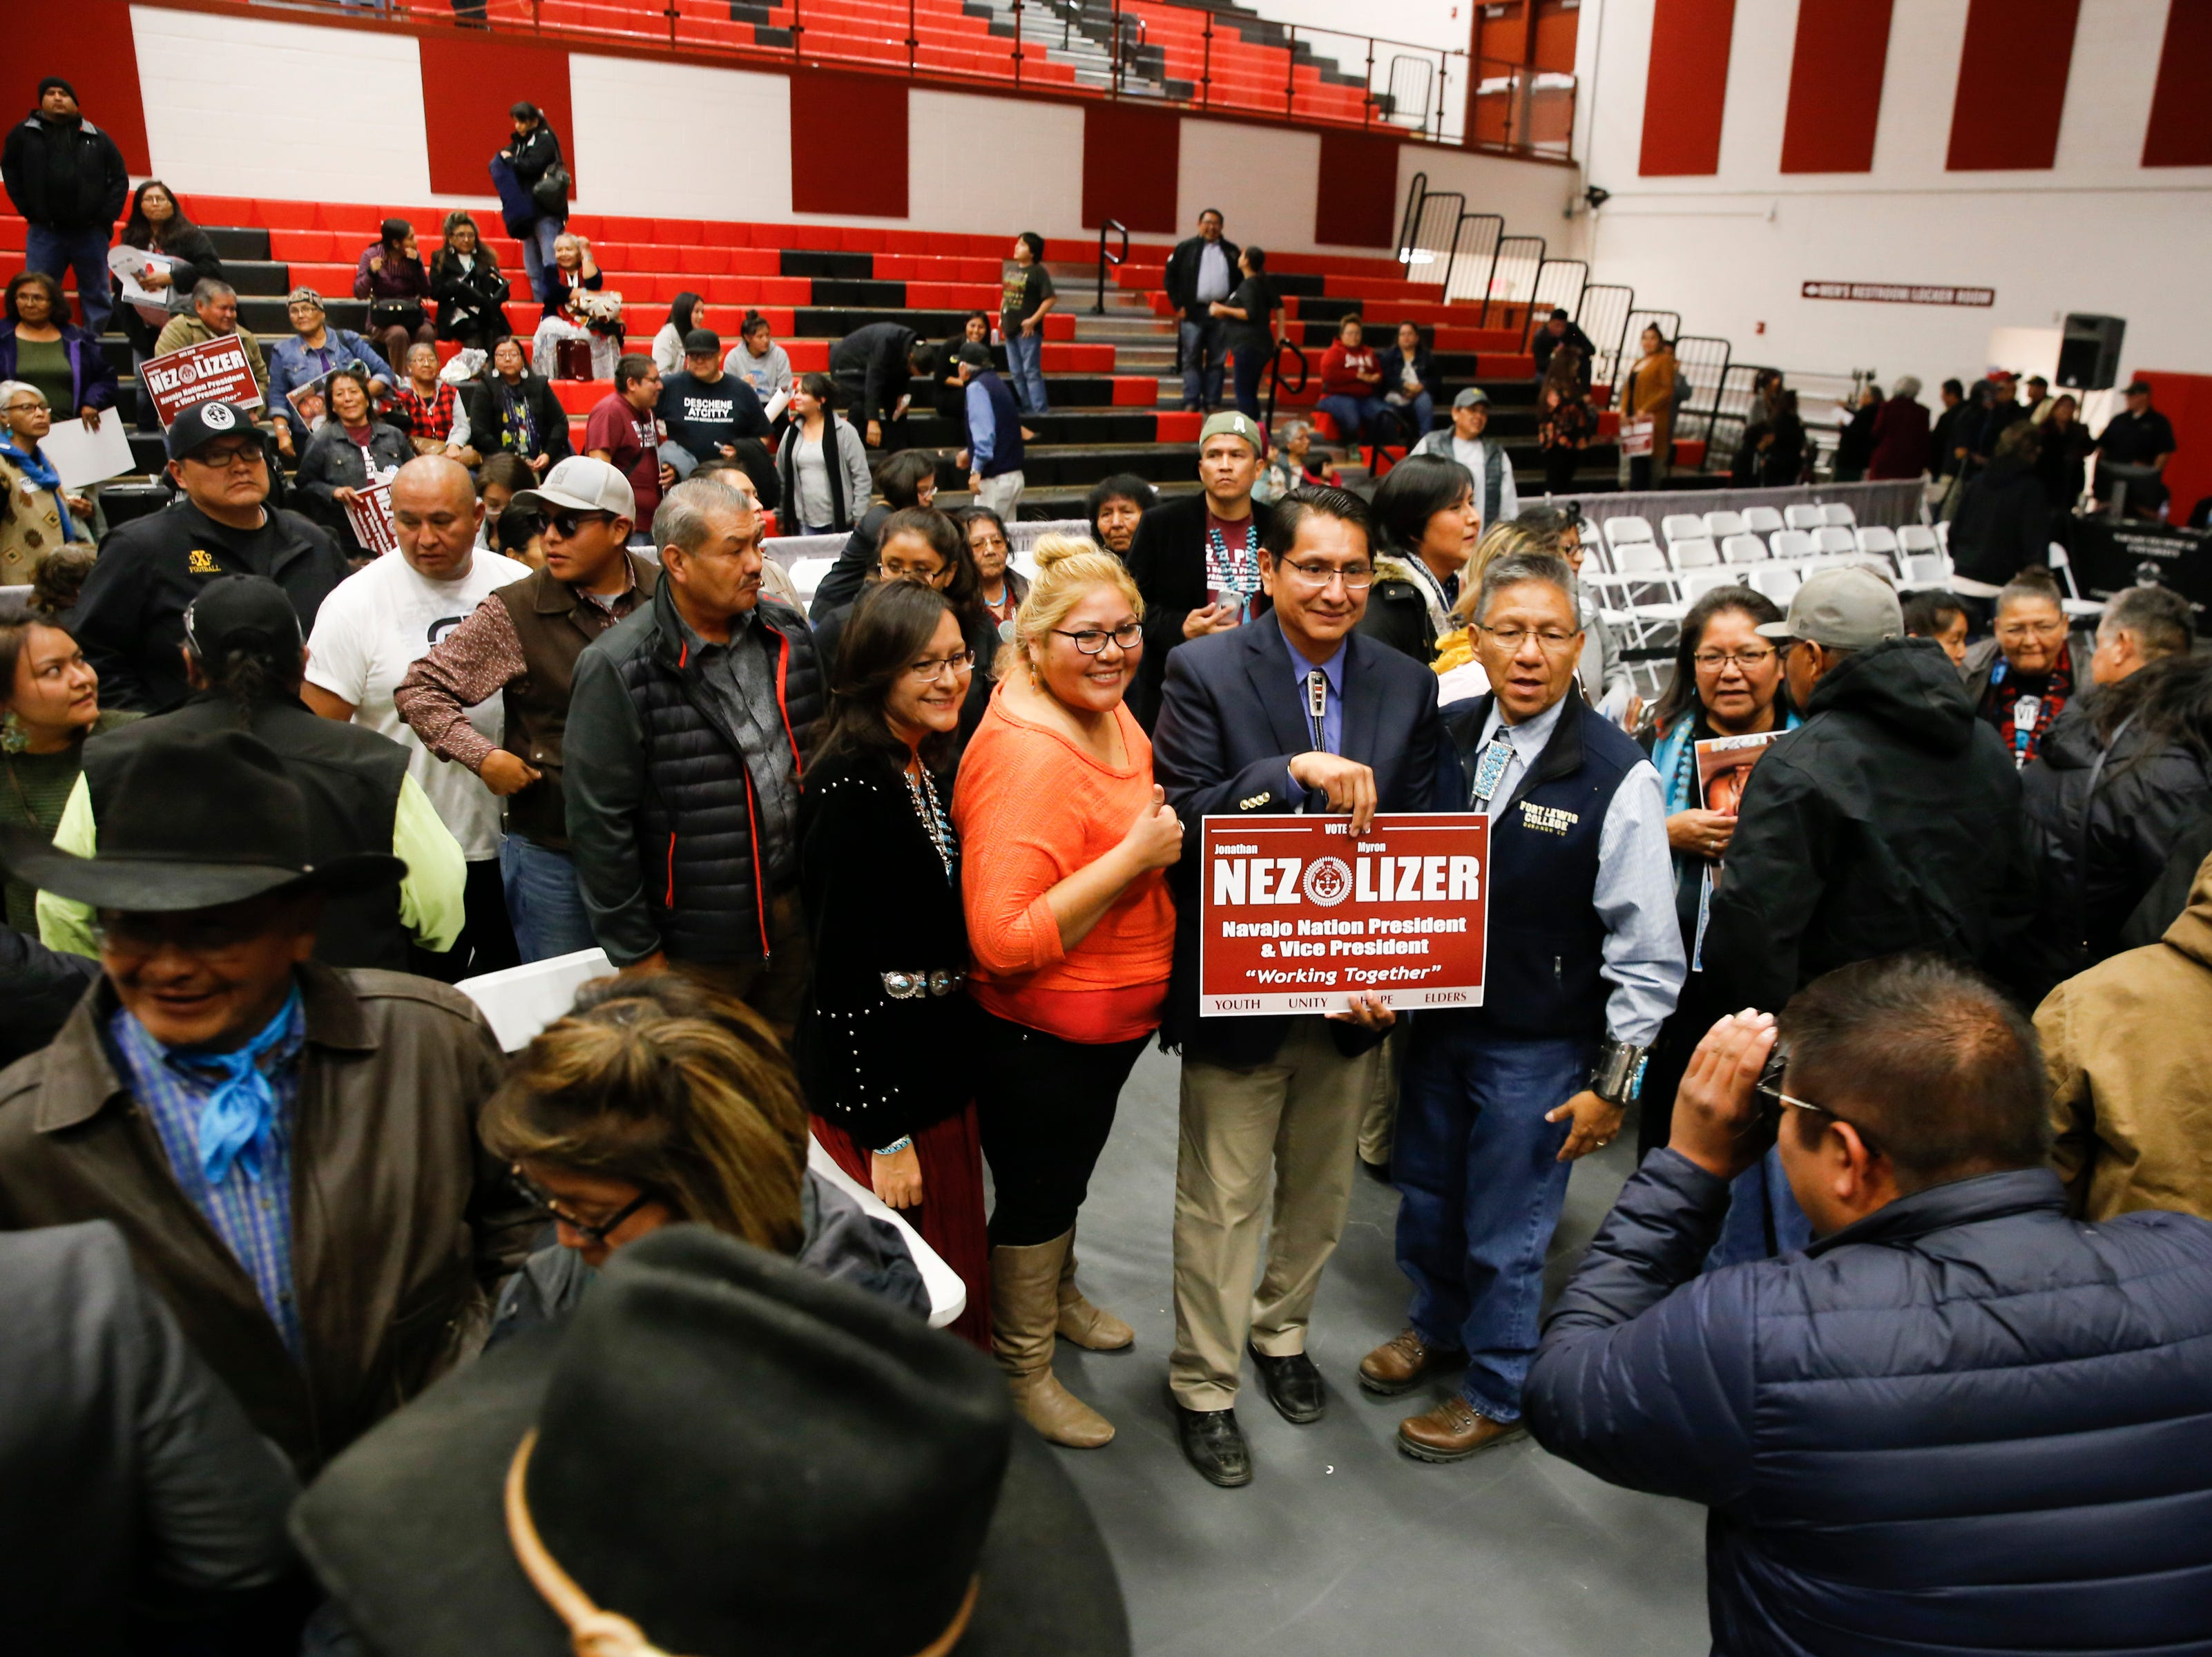 Navajo Nation Presidential candidate Jonathan Nez, at center, and his running mate Myron Lizer, at right, pose for photos at the conclusion of the 2018 Presidential Debate, Tuesday, Oct. 16, 2018 at Navajo Technical University's  Wellness Center in Crownpoint.